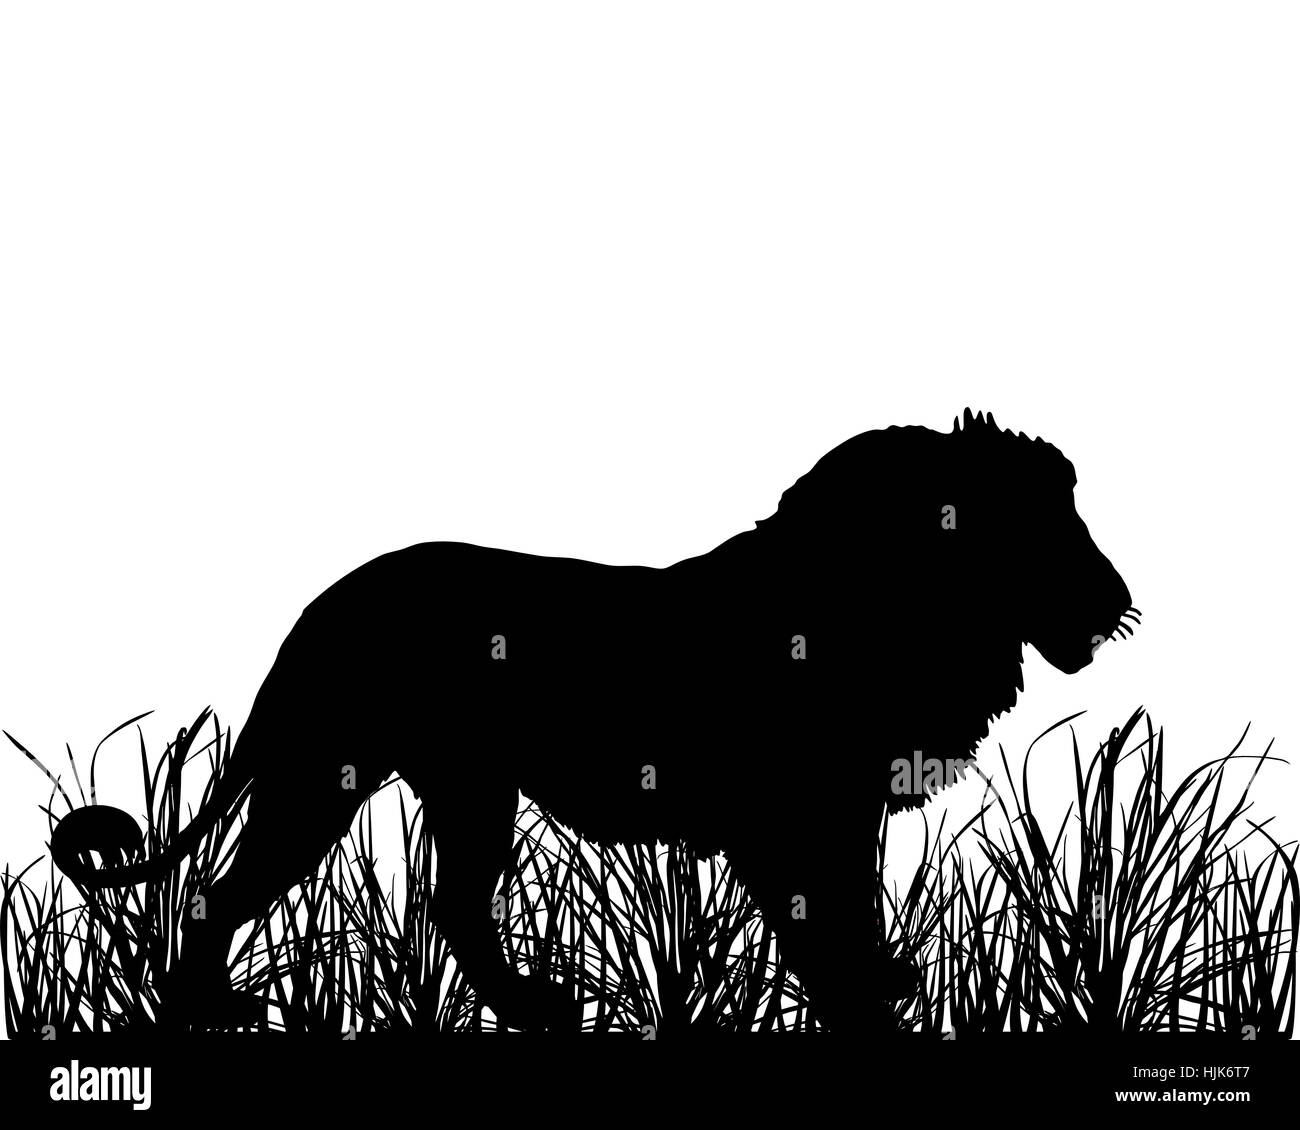 optional, graphic, green, savannah, lion, cat, big cat, feline predator, black, - Stock Image